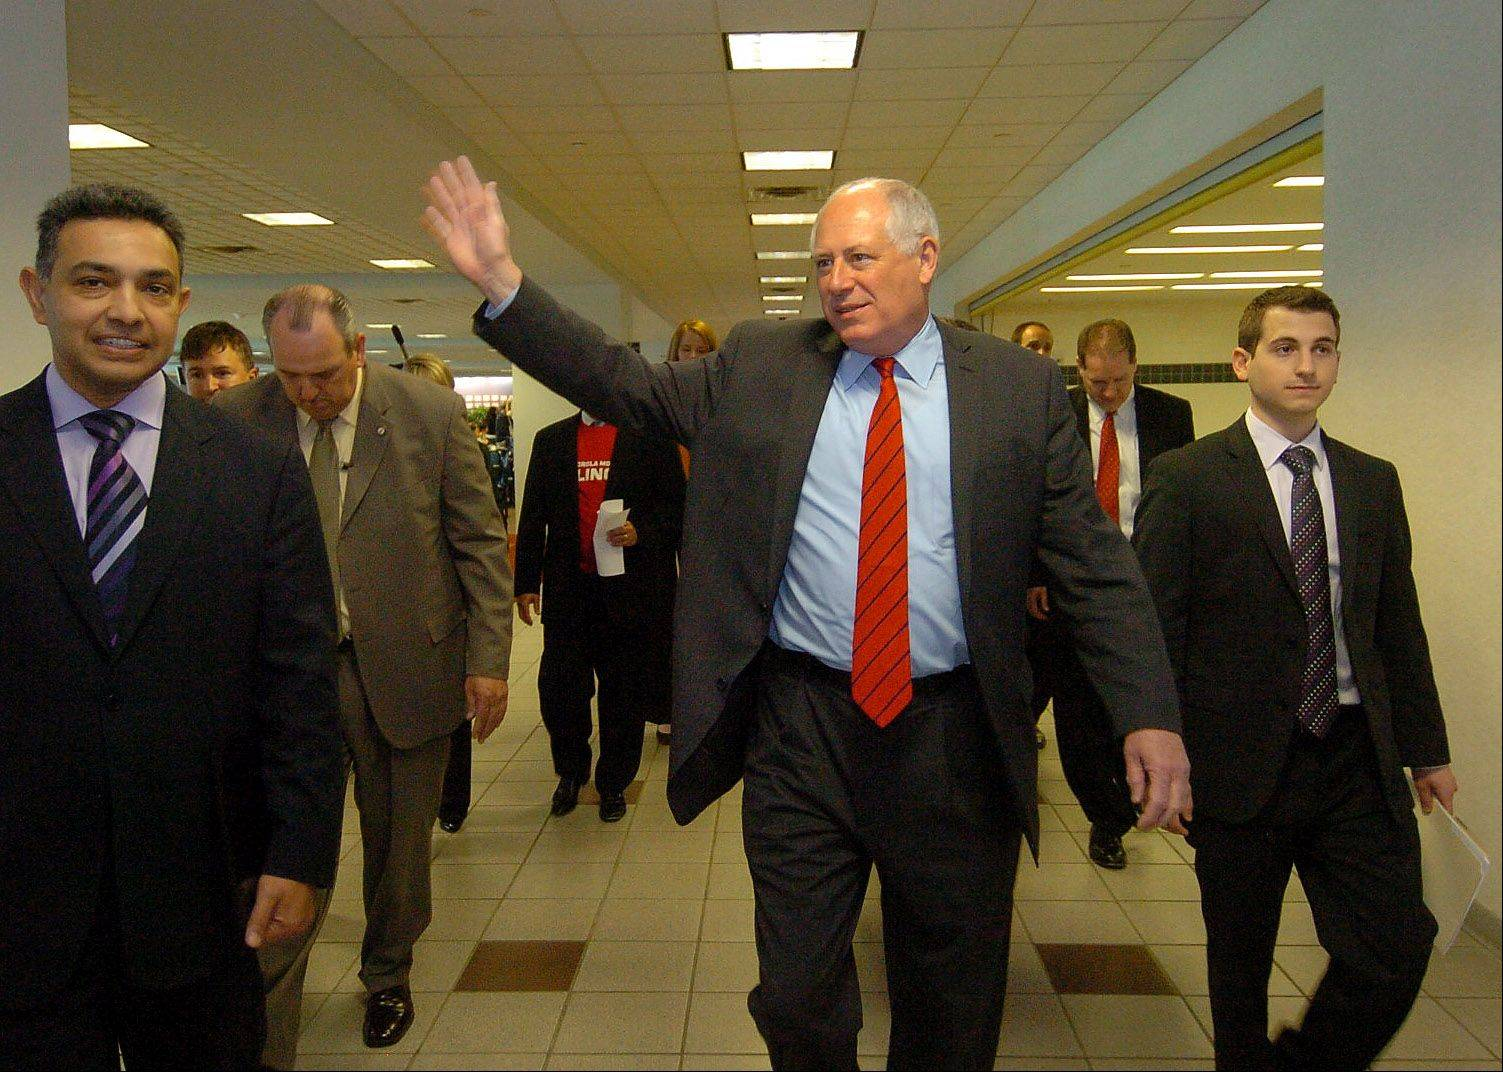 Illinois Gov. Pat Quinn waves to employees of Motorola Mobility in May after making an announcement with Motorola Mobility Chairman and CEO Dr. Sanjay Jha, left, that the company would stay headquartered in Libertyville.